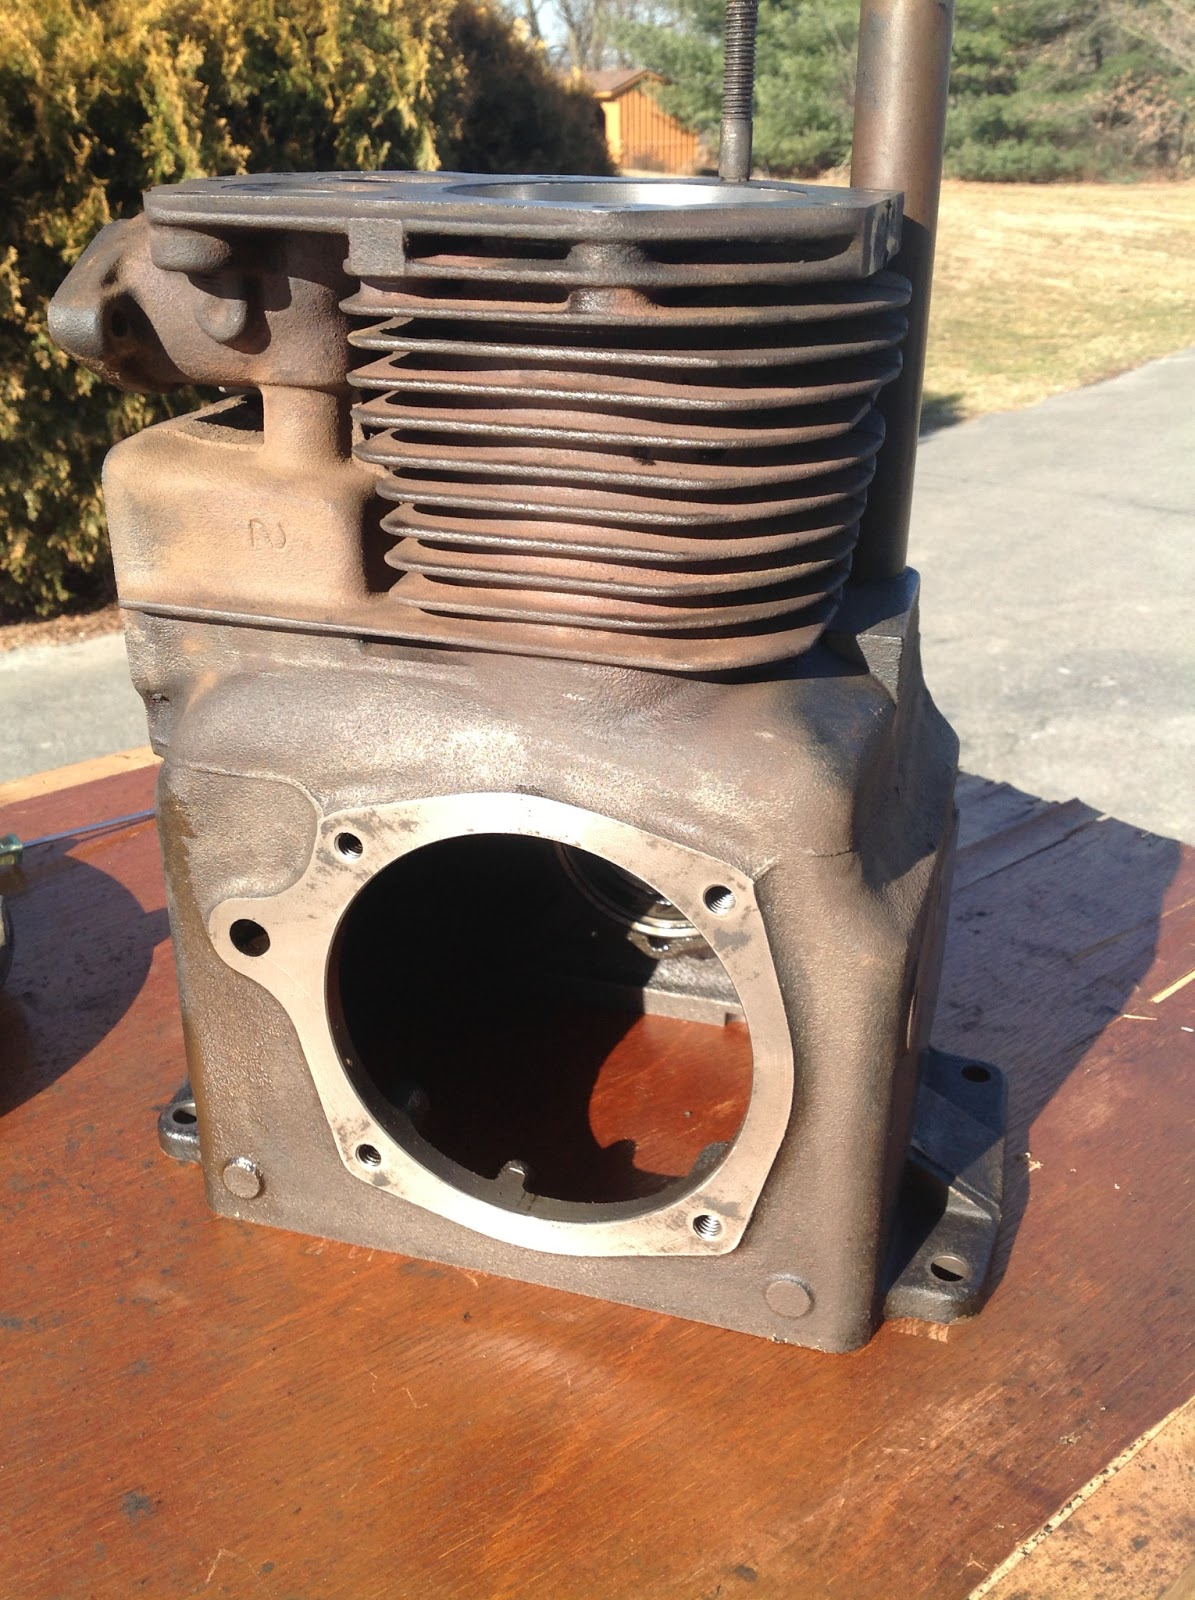 robert s projects kohler k341 engine overhaul this is a solidly built engine and weighs somewhere around 90 pounds when assembled once disassembled the bare block was easy to pick up and turn over to